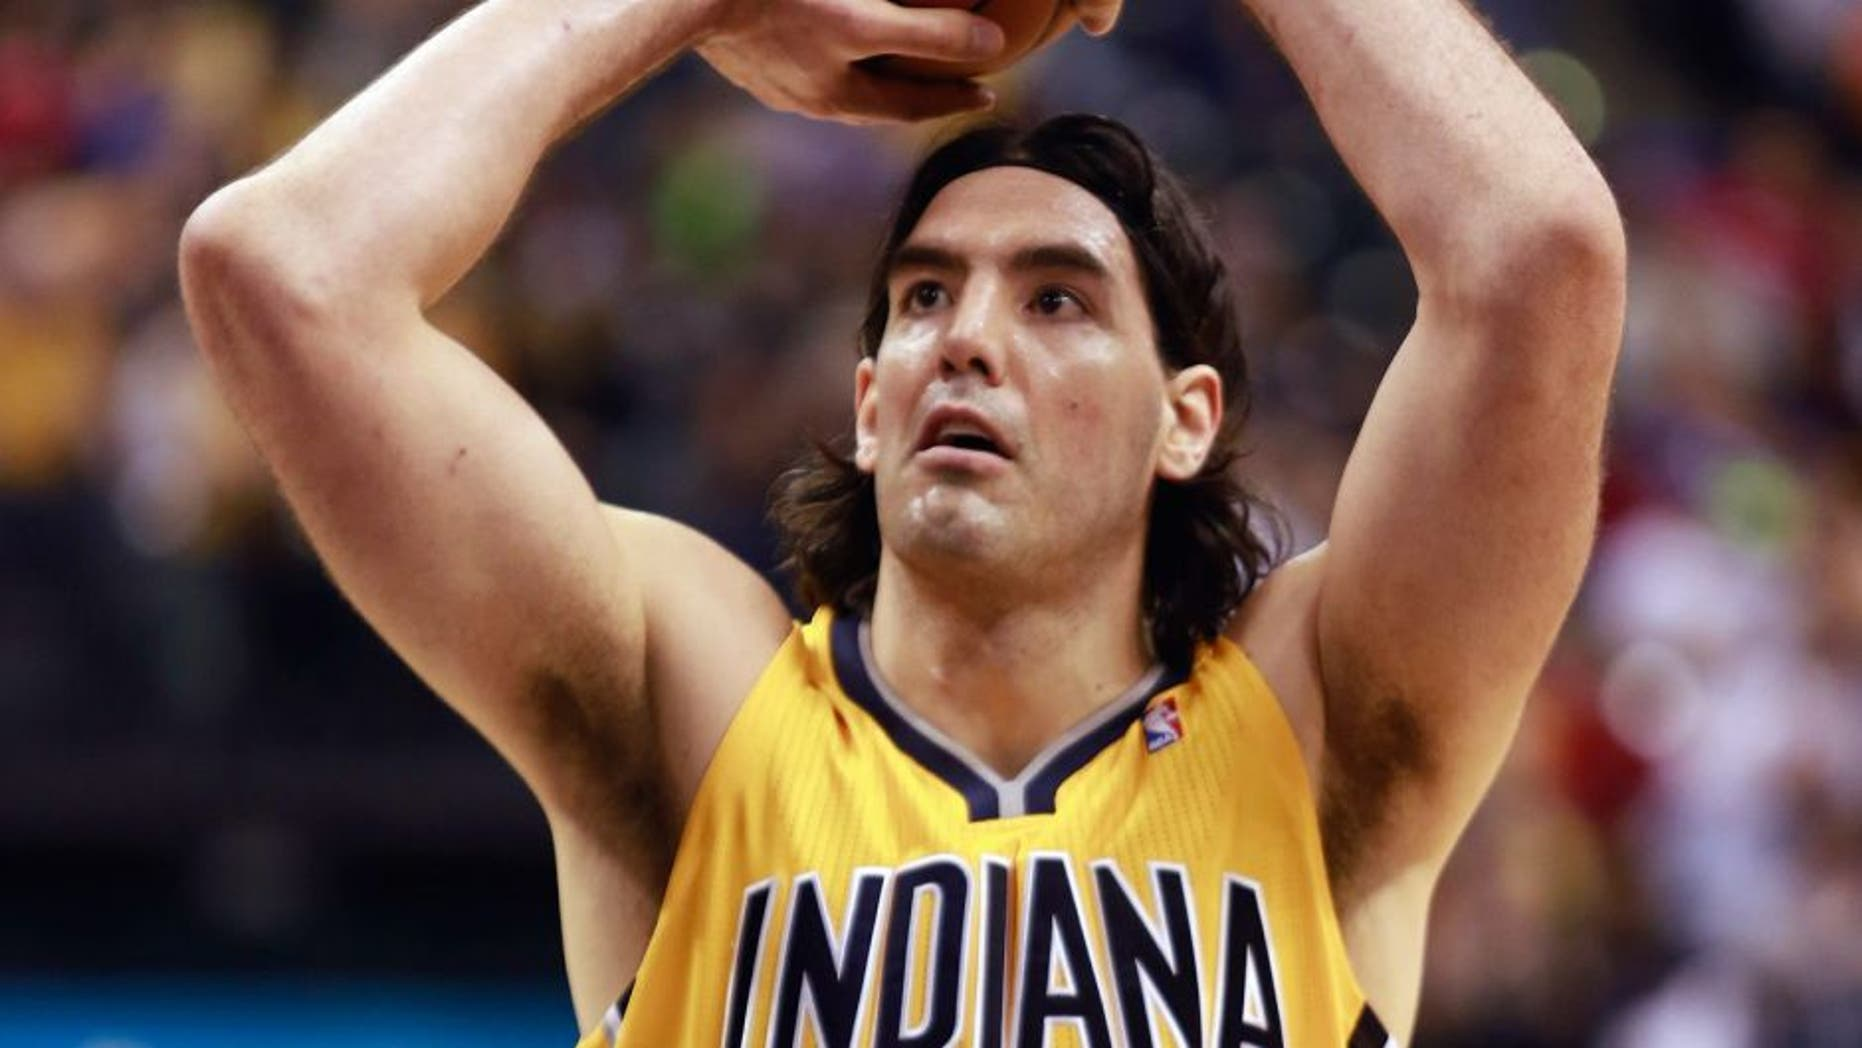 Indiana Pacers forward Luis Scola shoots a free throw against the Chicago Bulls in the second half of an NBA basketball game in Indianapolis, Friday, March 21, 2014. Indiana won 91-79. (AP Photo/R Brent Smith)